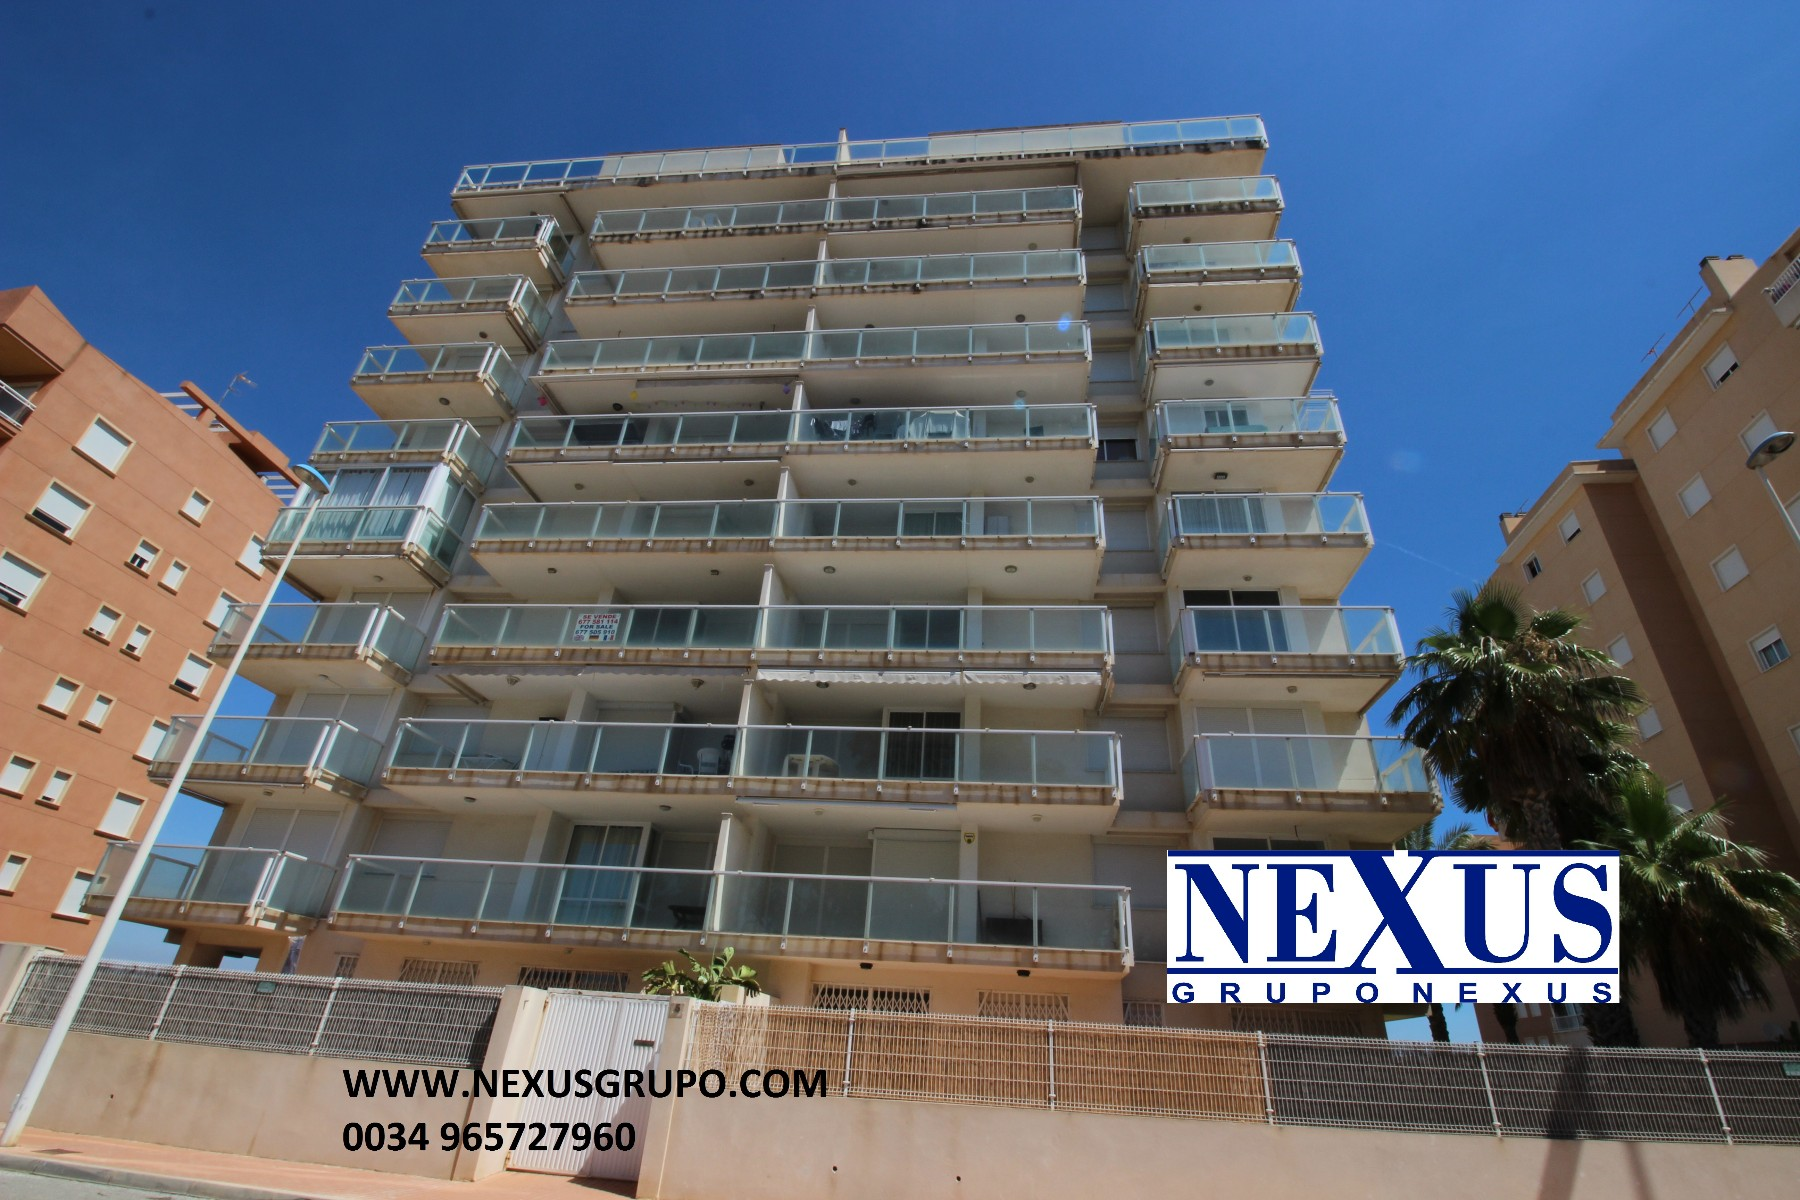 ​GRUPO NEXUS REAL ESTATE AGENCY RENTS EXCELLENT APARTMENT FOR LONG TERM. in Nexus Grupo